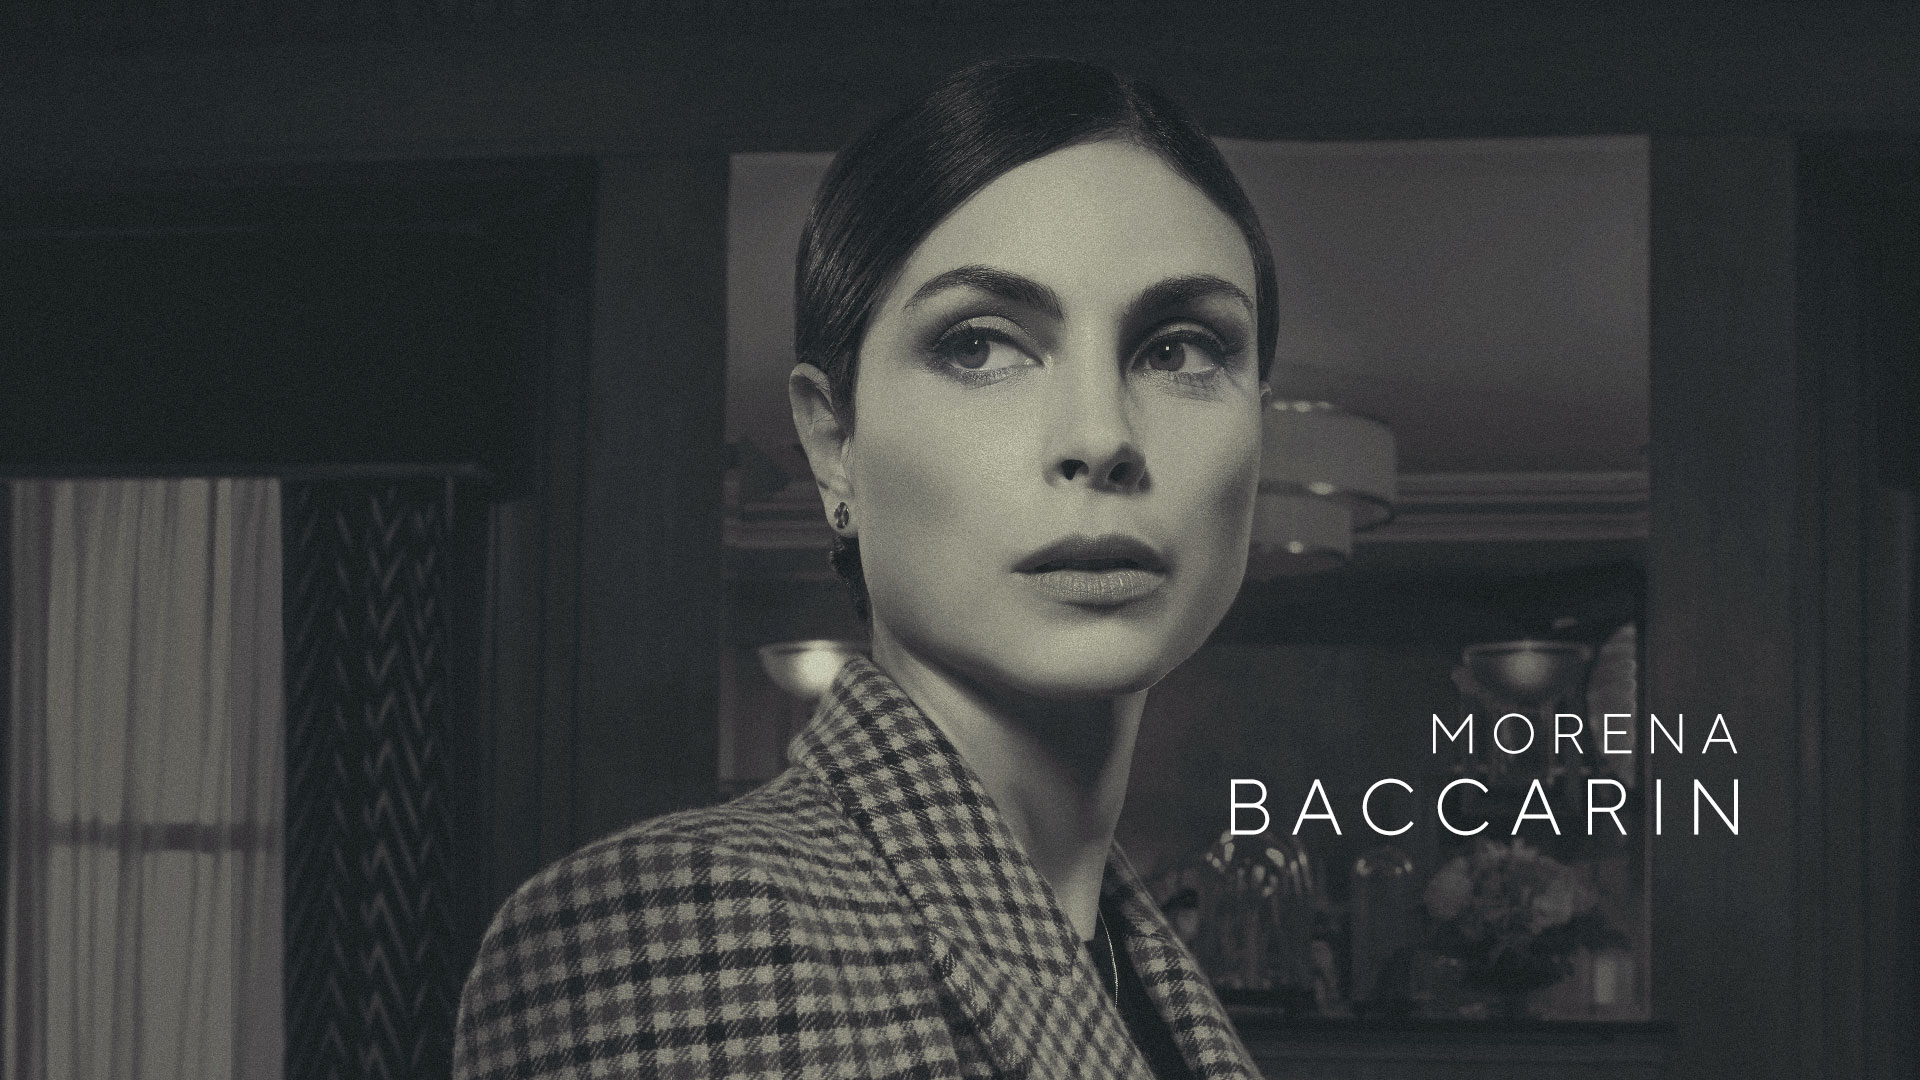 Morena Baccarin as Michelle in